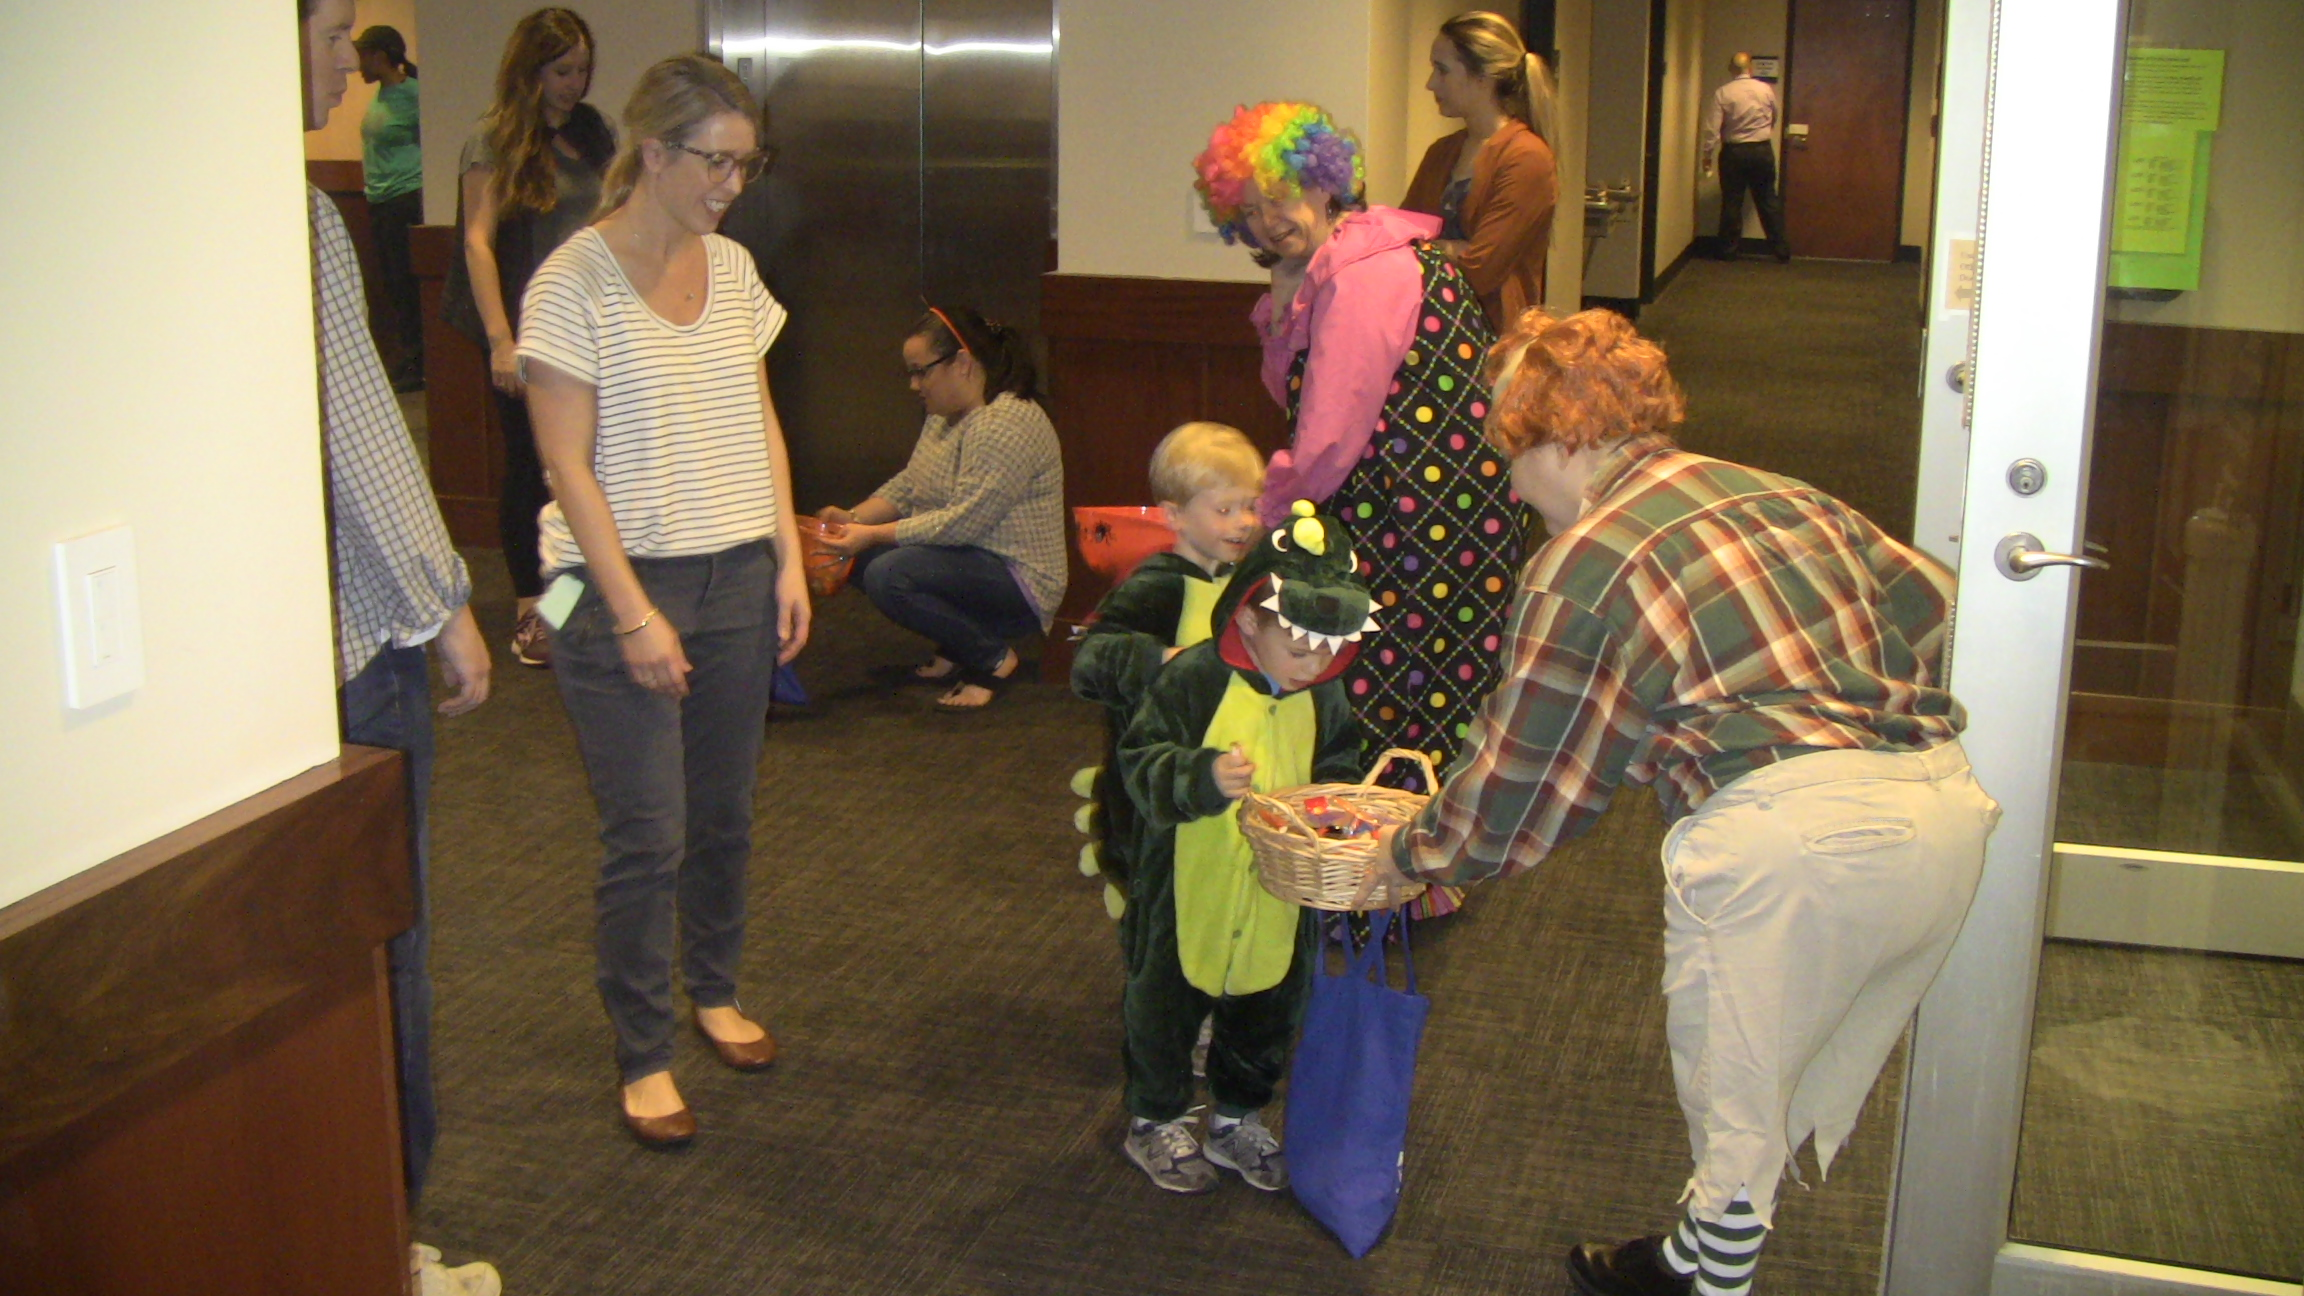 Robin Yekaitis dressed up as a lollipop kid from Wizard of Oz, hands out treats during Halloween.